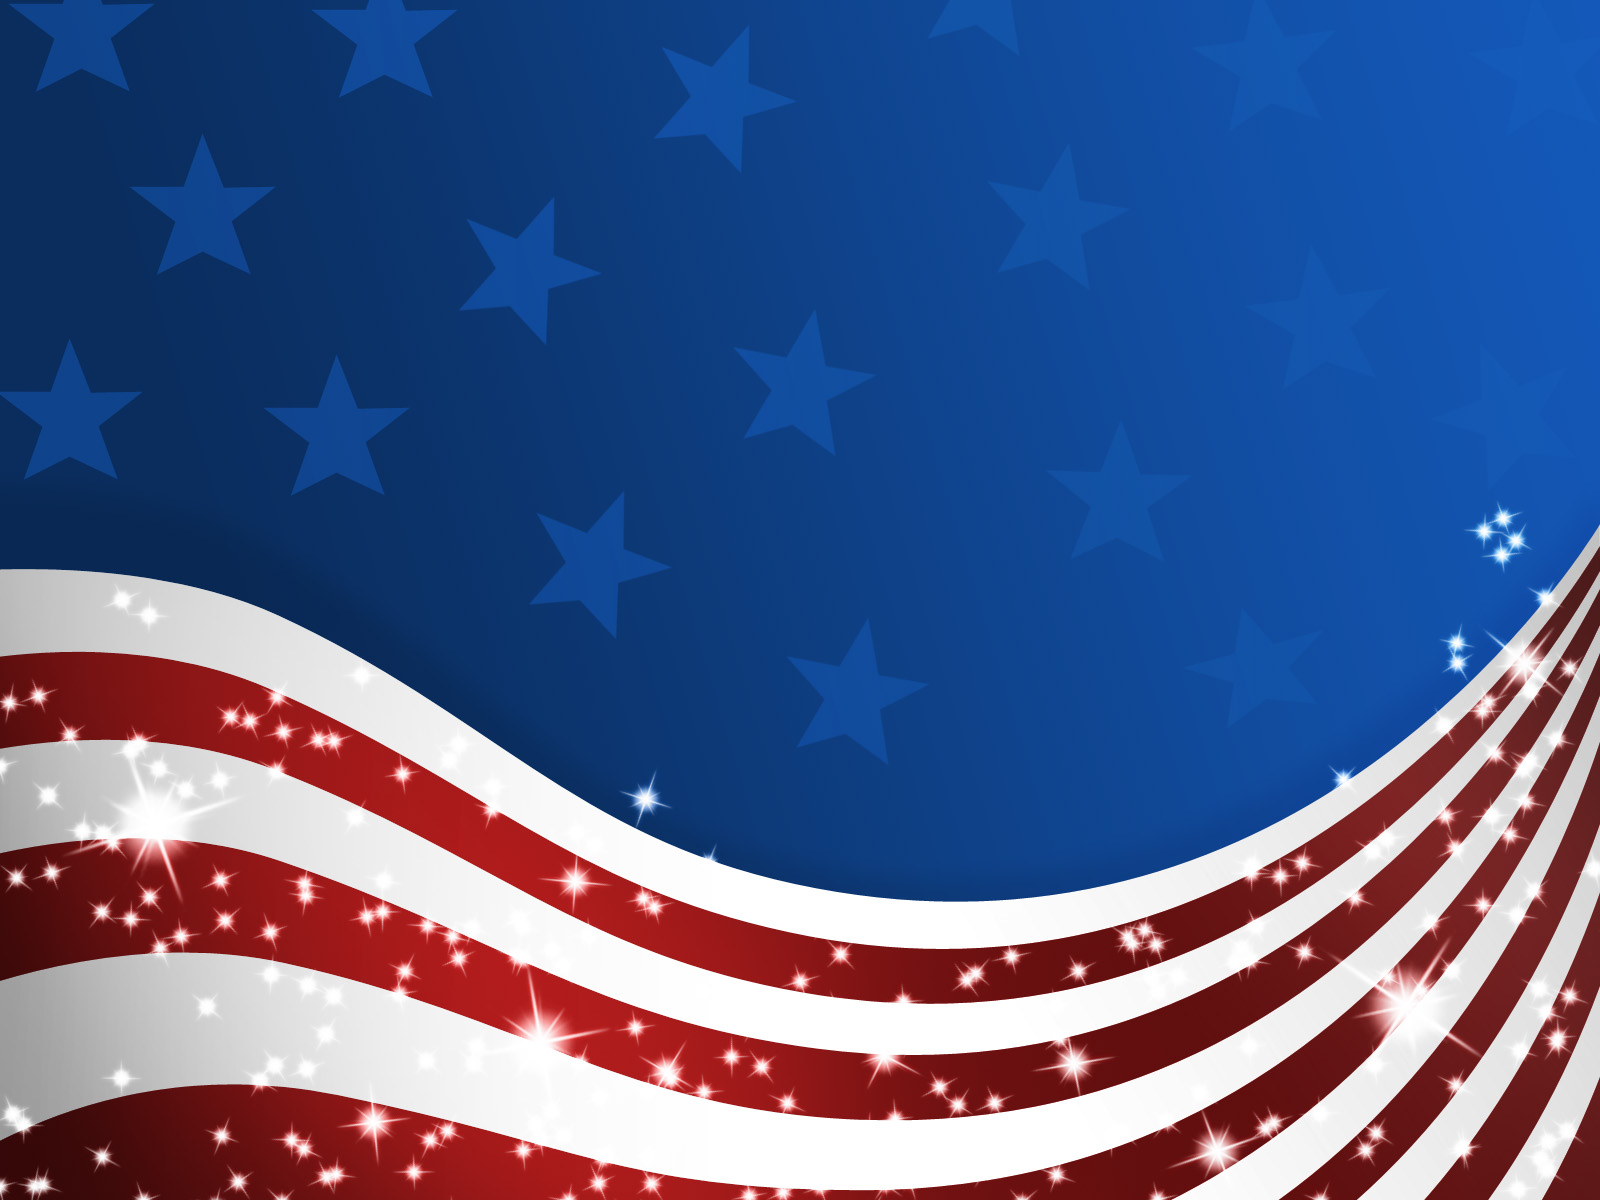 American Patriotic Flag PPT Backgrounds